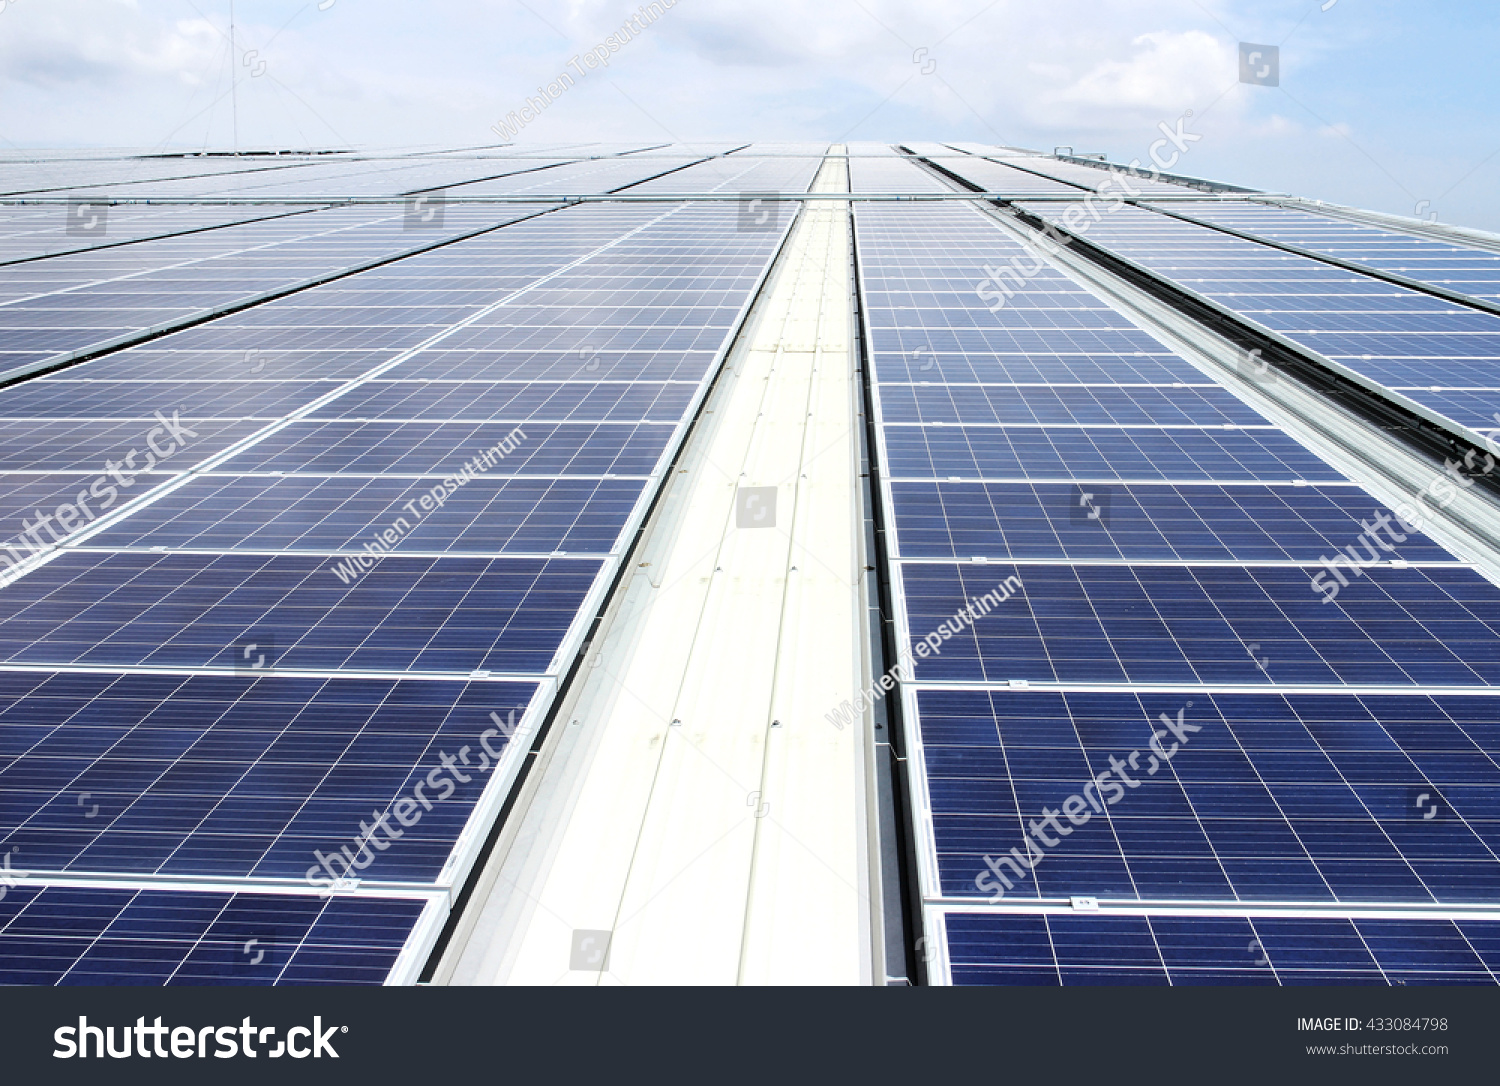 large scale pv system based on the Planning guidance for the development of large scale ground mounted solar pv systems 3  (based on 1990 levels)  large scale solar pv arrays are not expressly .